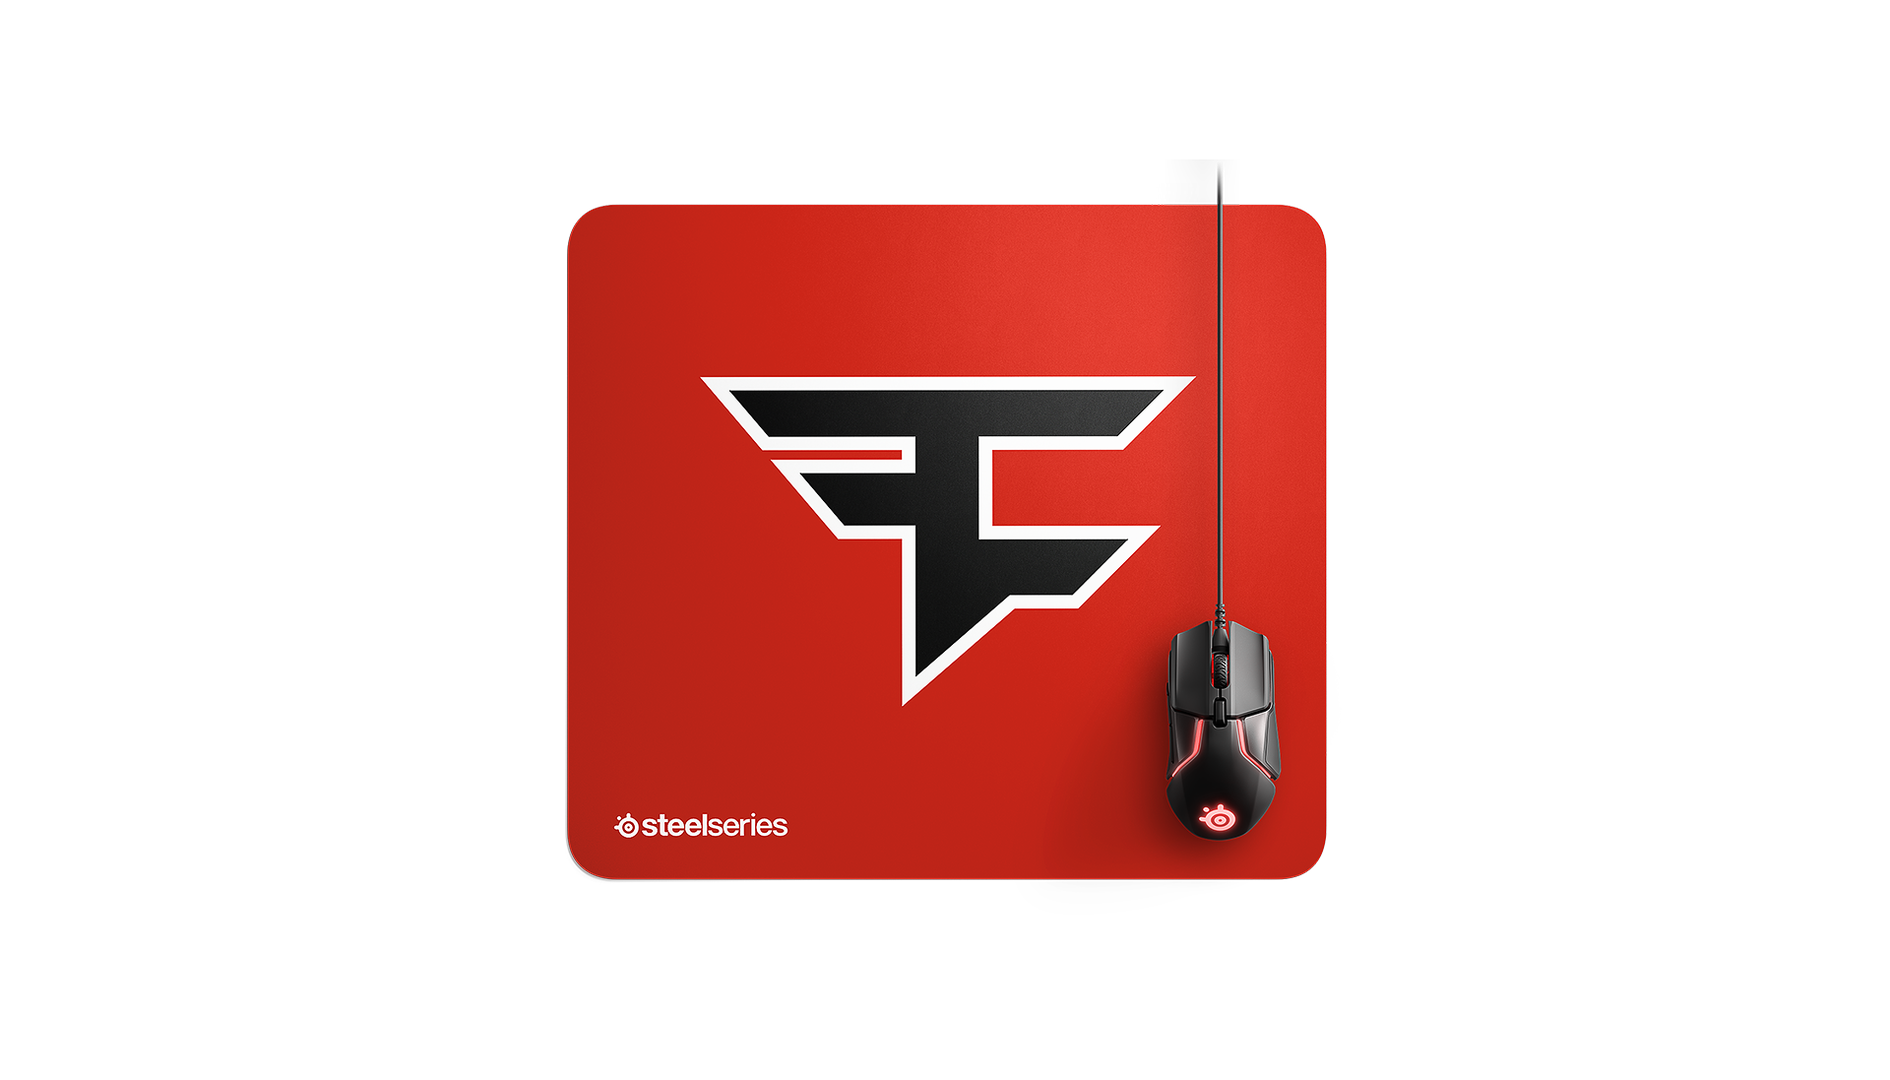 FaZe SteelSeires mousepad with correct logo bold style